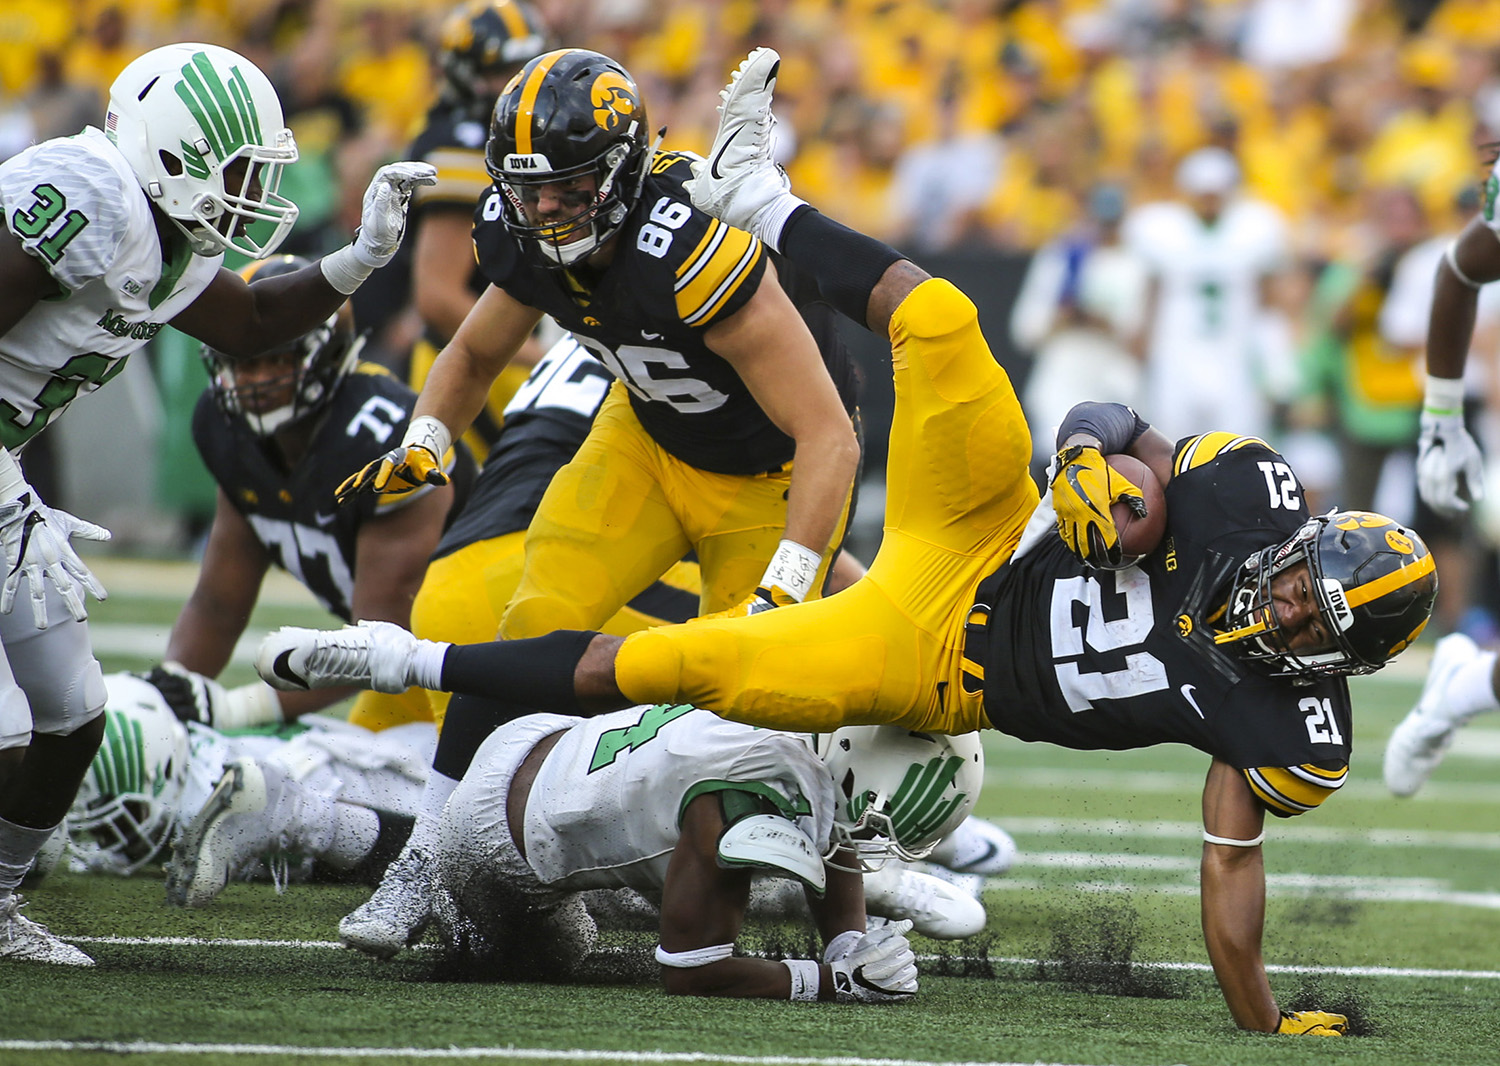 Iowa Hawkeyes running back Ivory Kelly-Martin (21) dives over North Texas safety Khairi Muhammad (4) during the fourth quarter of their game at Kinnick Stadium in Iowa City, Iowa, on Saturday, September 16, 2017.